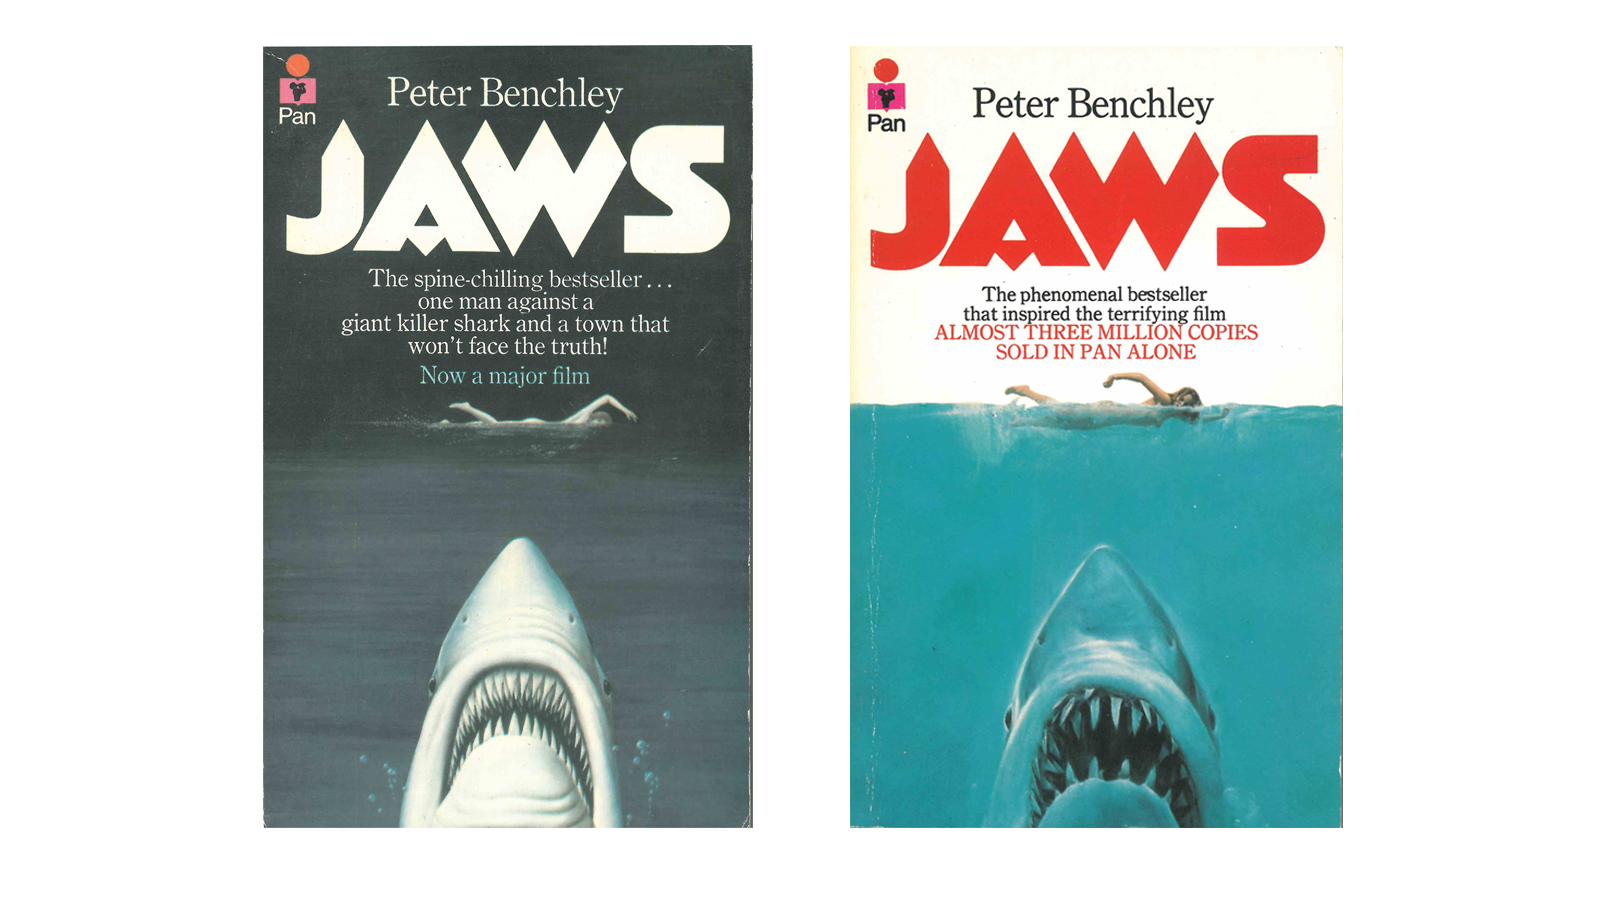 Jaws-cover-film-1975-1976-Pan